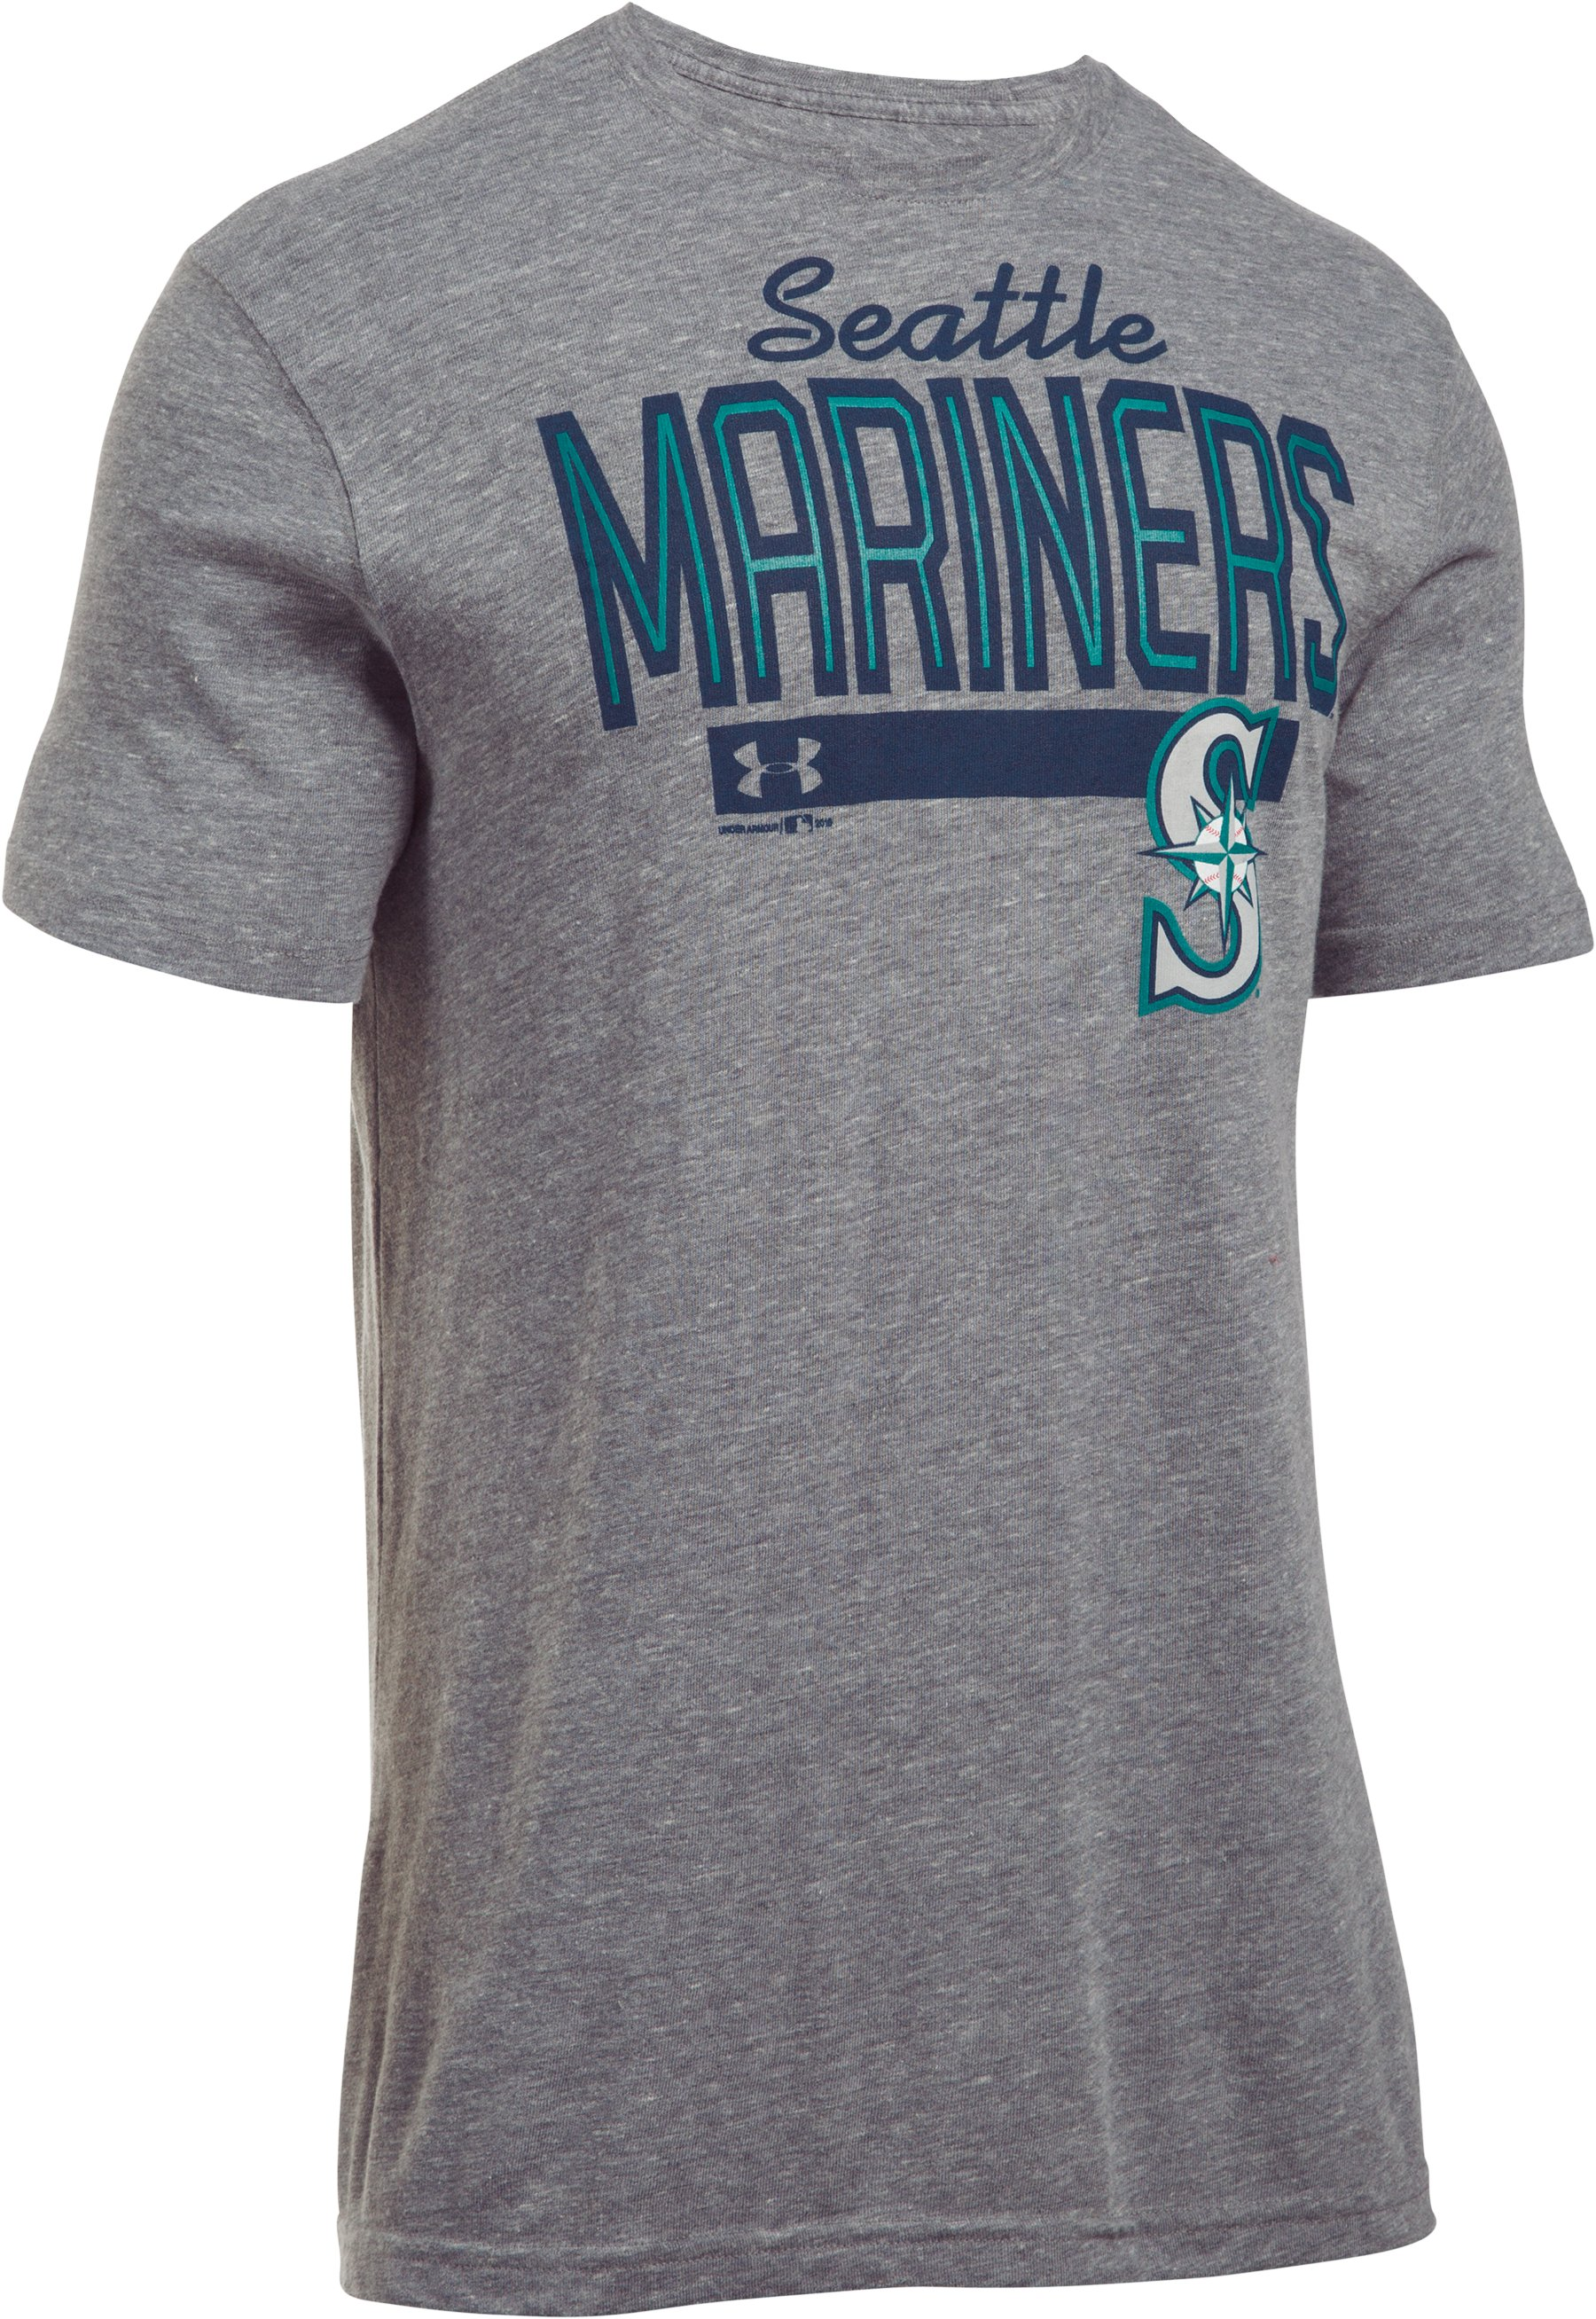 Men's Seattle Mariners Tri-blend T-Shirt, True Gray Heather